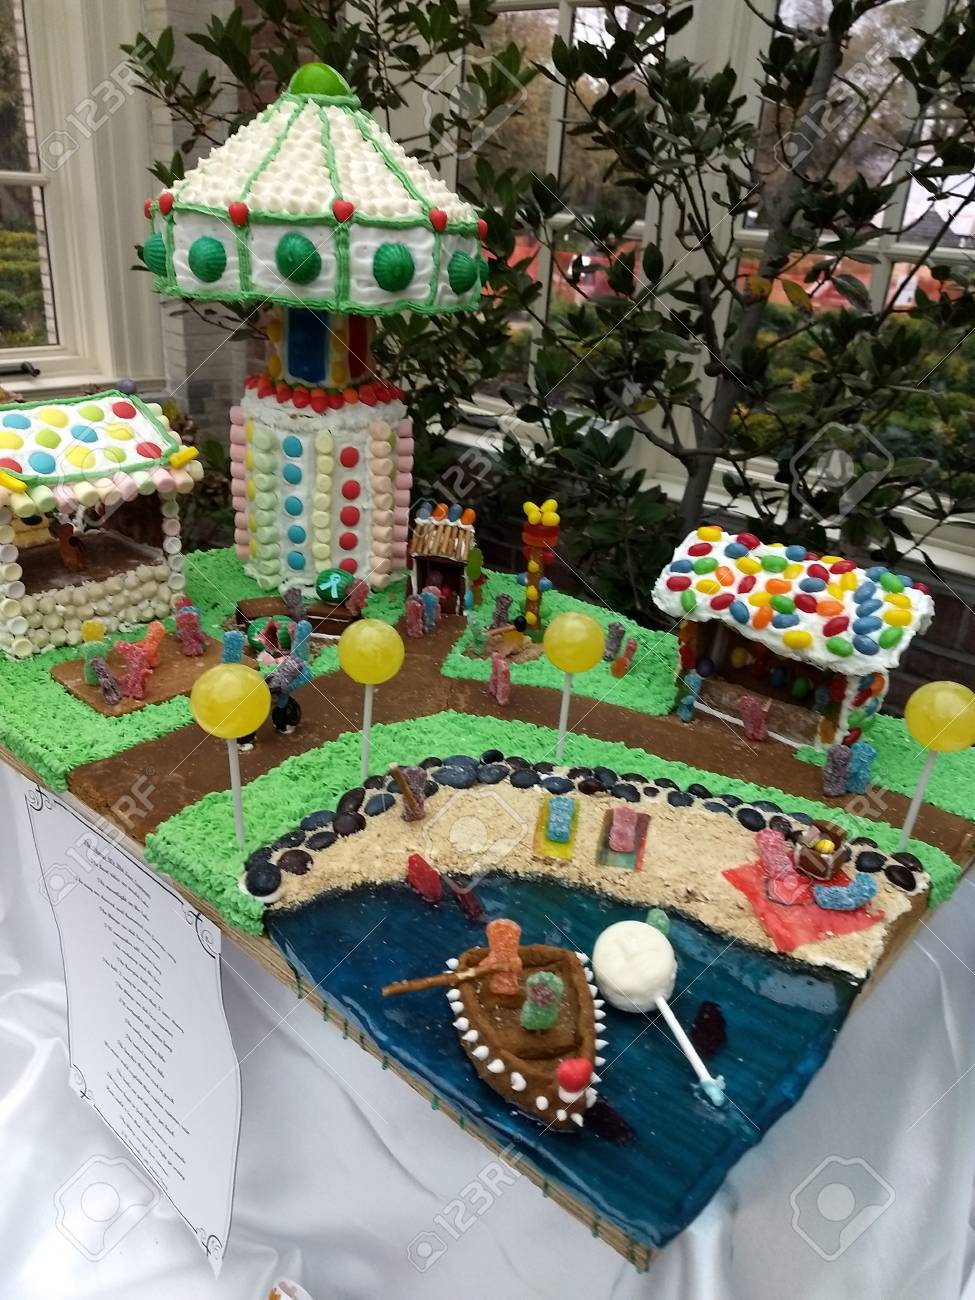 Editorial - November 14, 2017 - Rochester, NY - George Eastman Museum - gingerbread house exhibit Stock Photo - 90125504